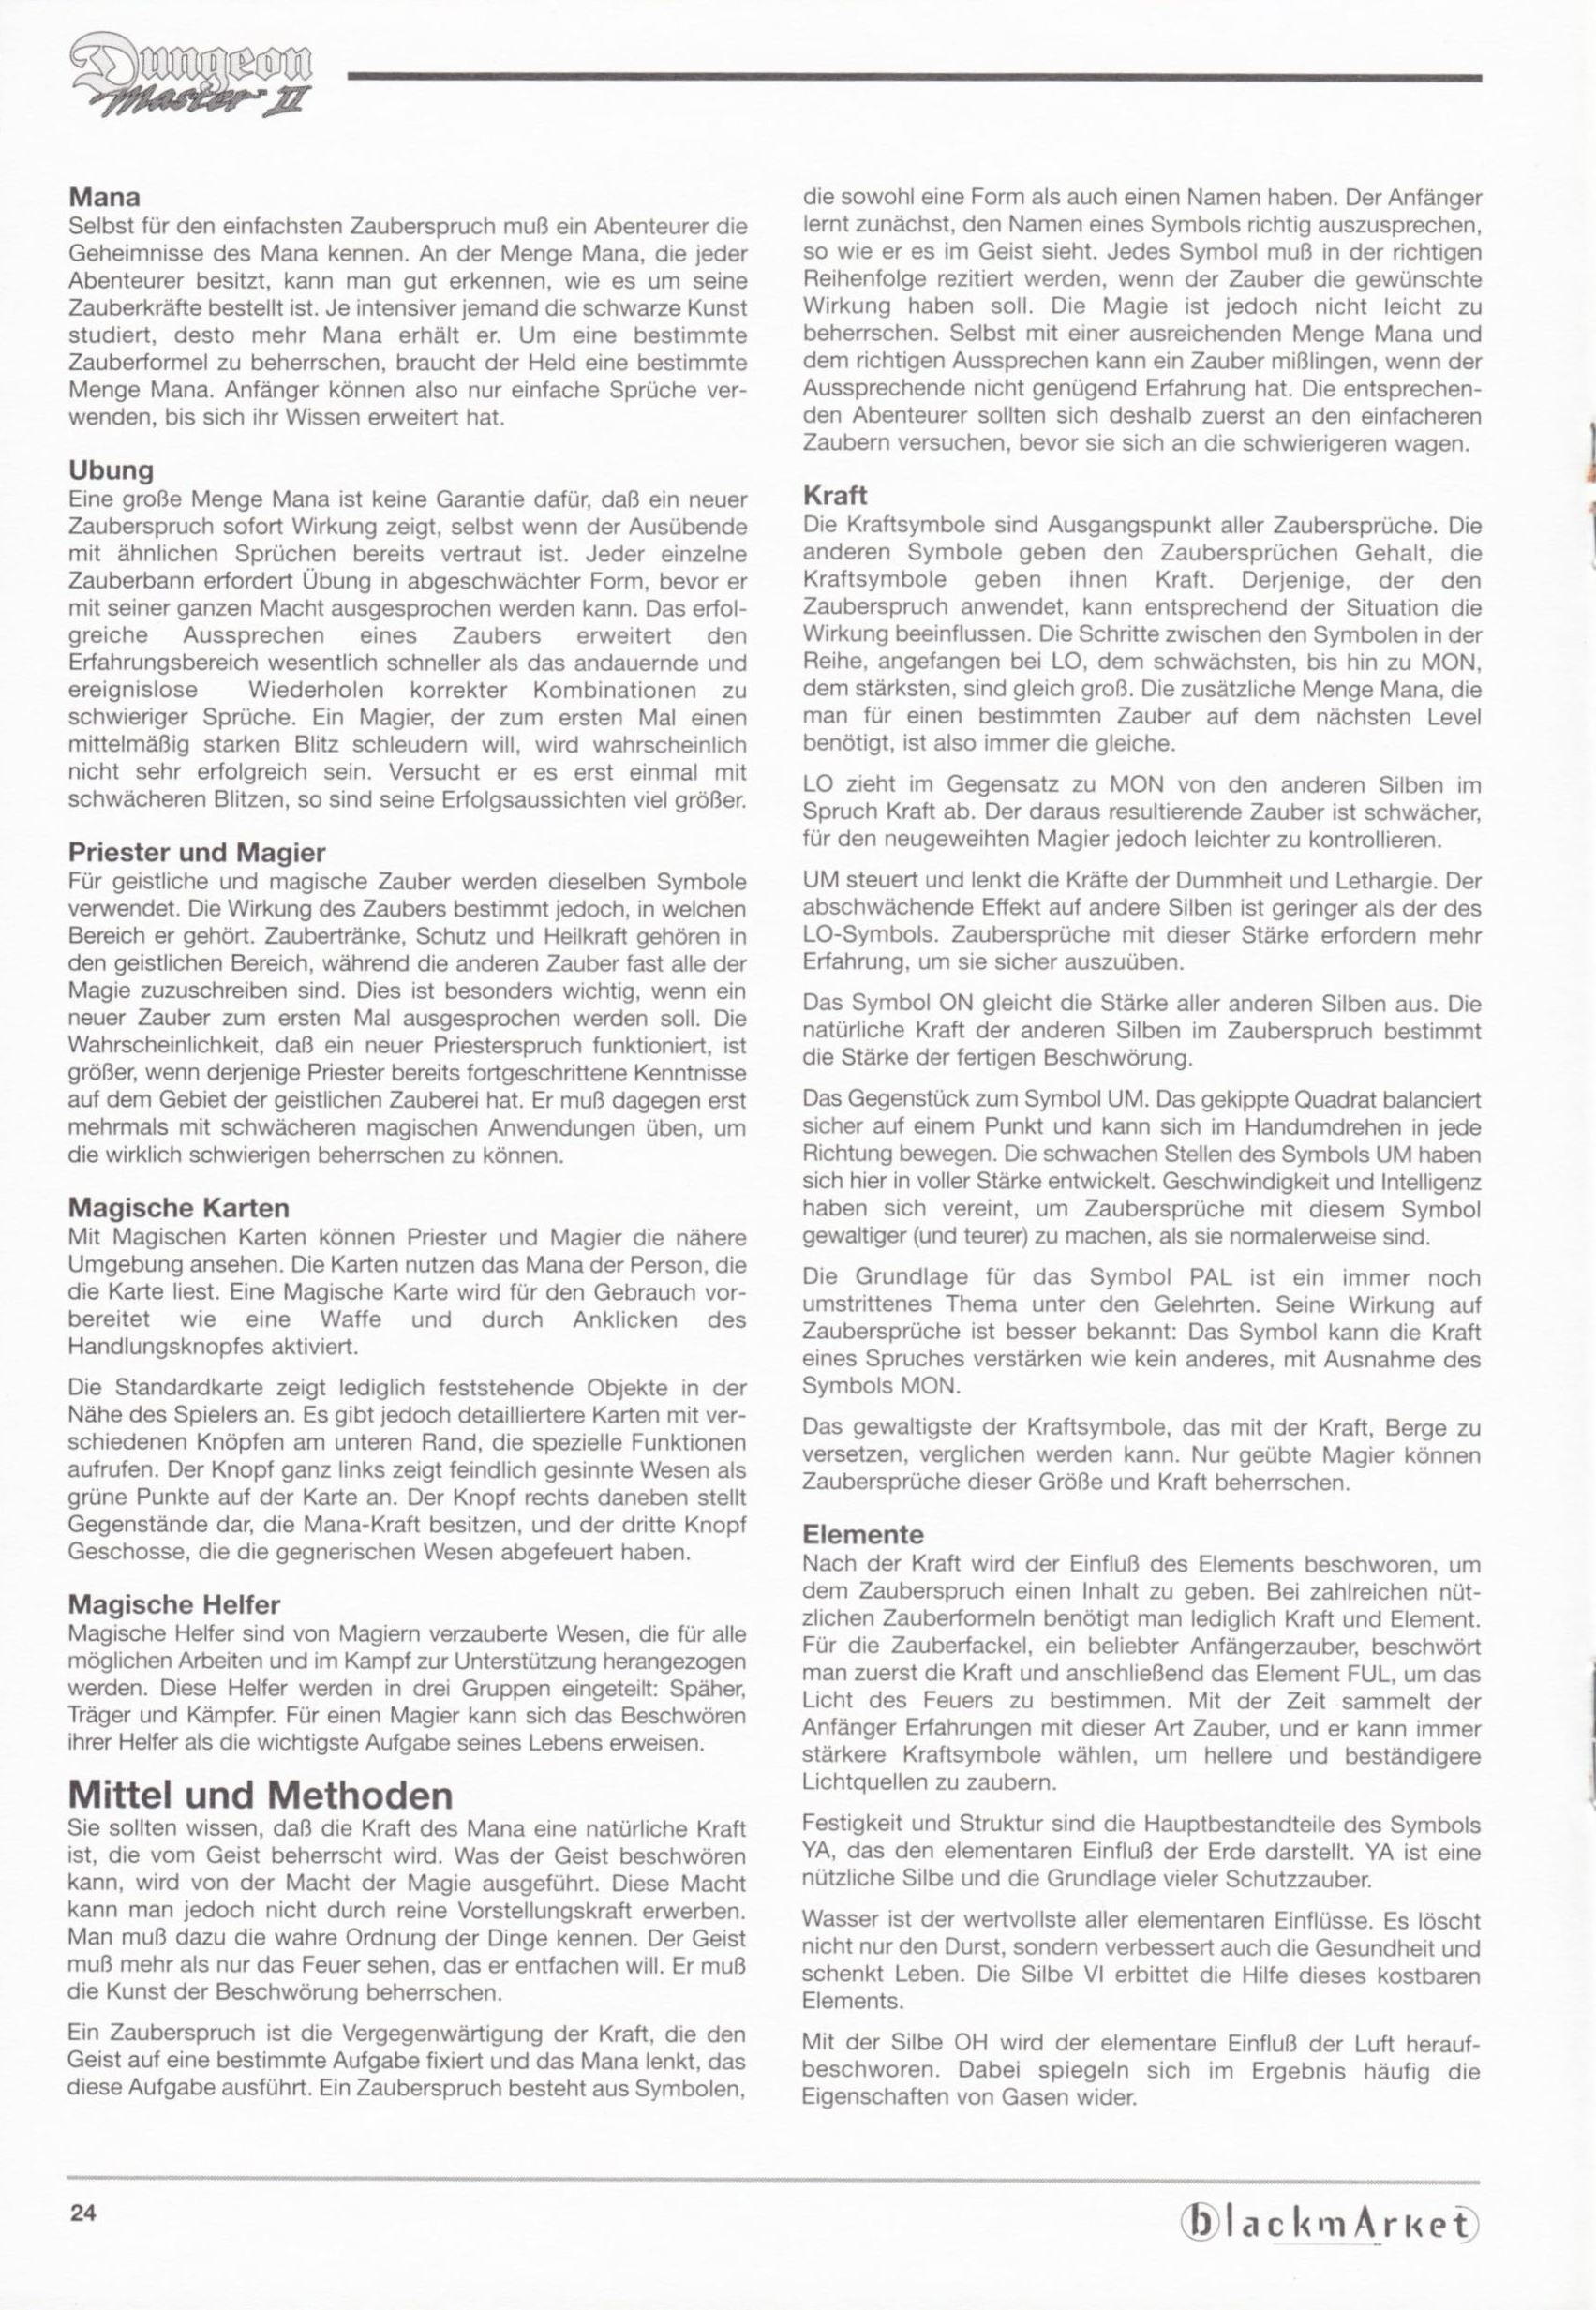 Game - Dungeon Master II - DE - PC - Blackmarket With Manual - Manual - Page 026 - Scan